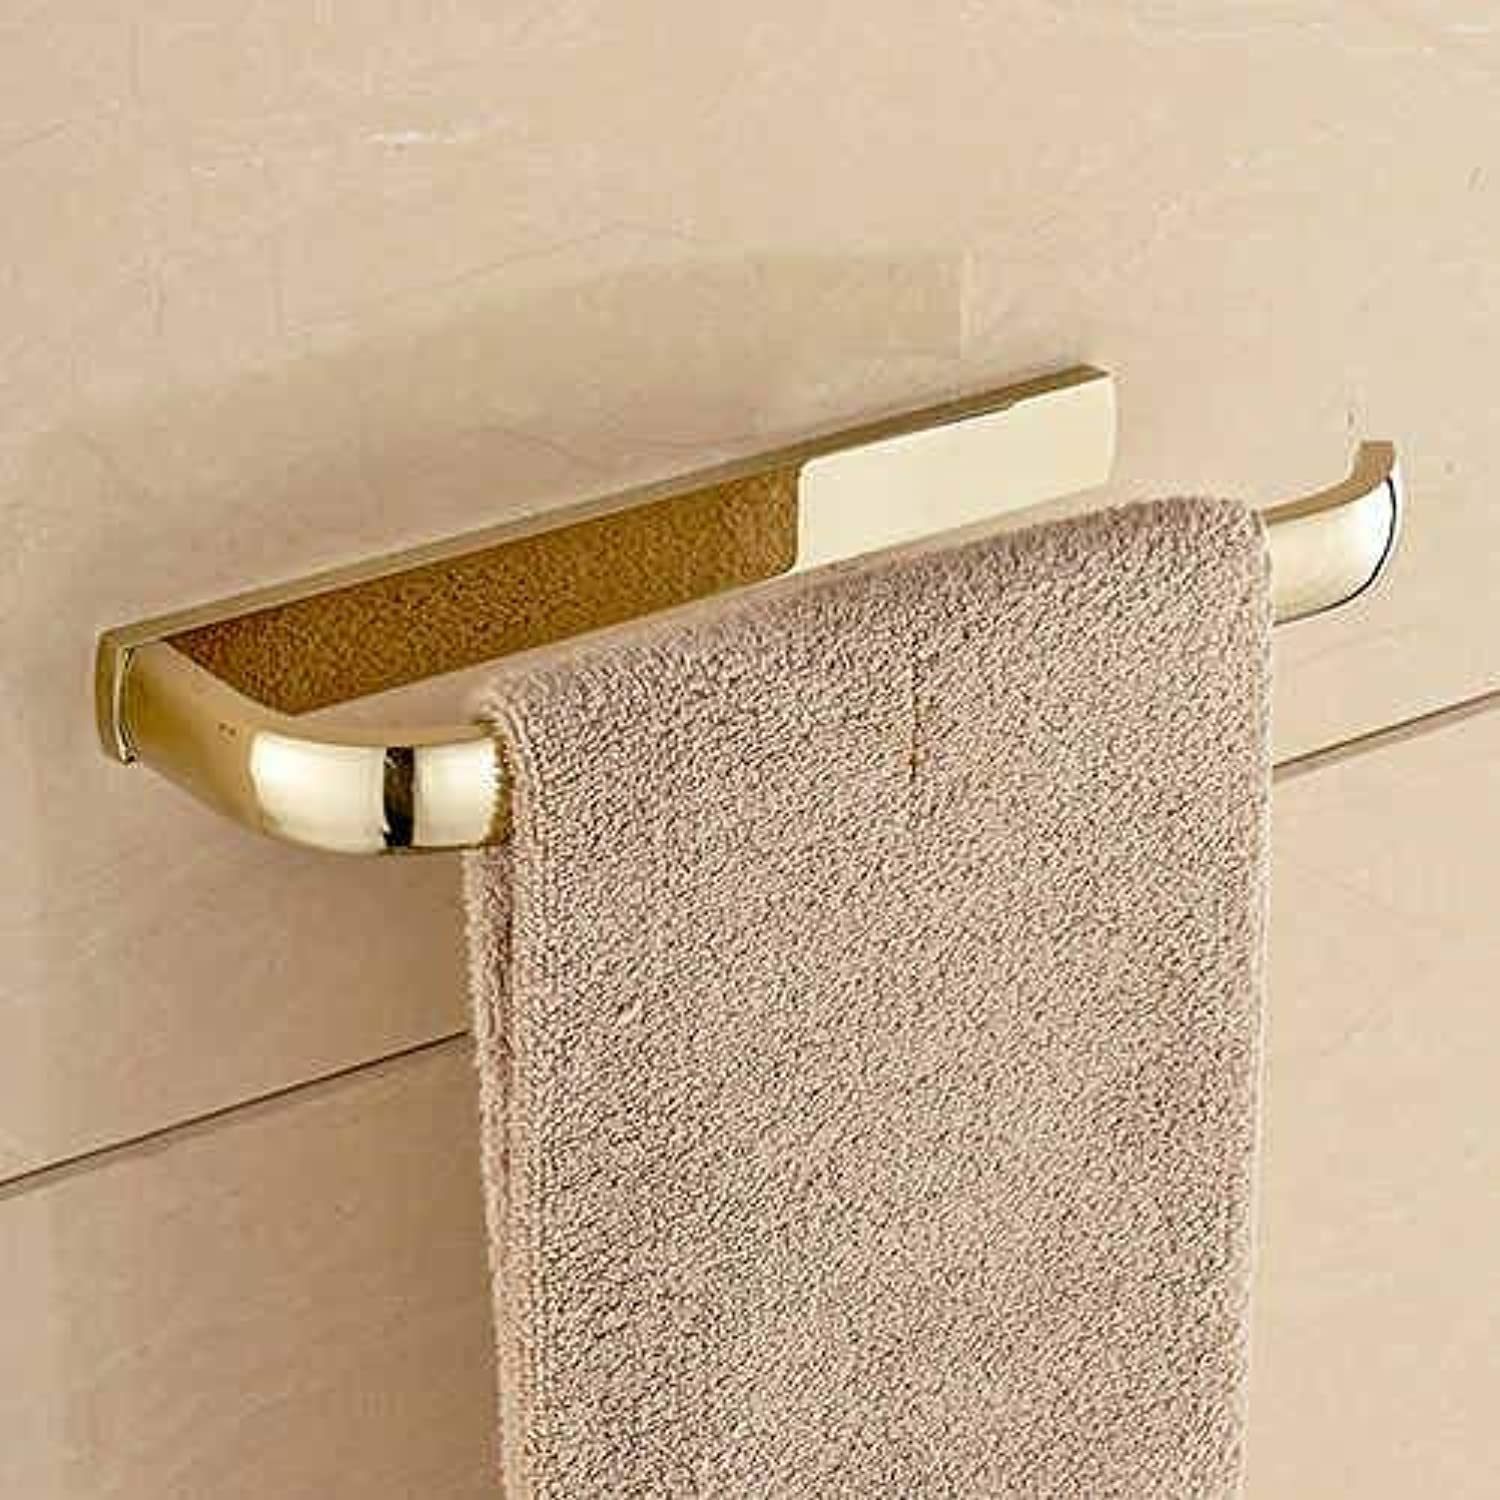 Towel Rack Towel Ring Towel Bar Lavatory Towel Rack Holder Solid Brass Black Chrome gold pink golden Antique Bathroom Accessories Hy-2205K, golden Bathroom Towel Shelf (color   golden)